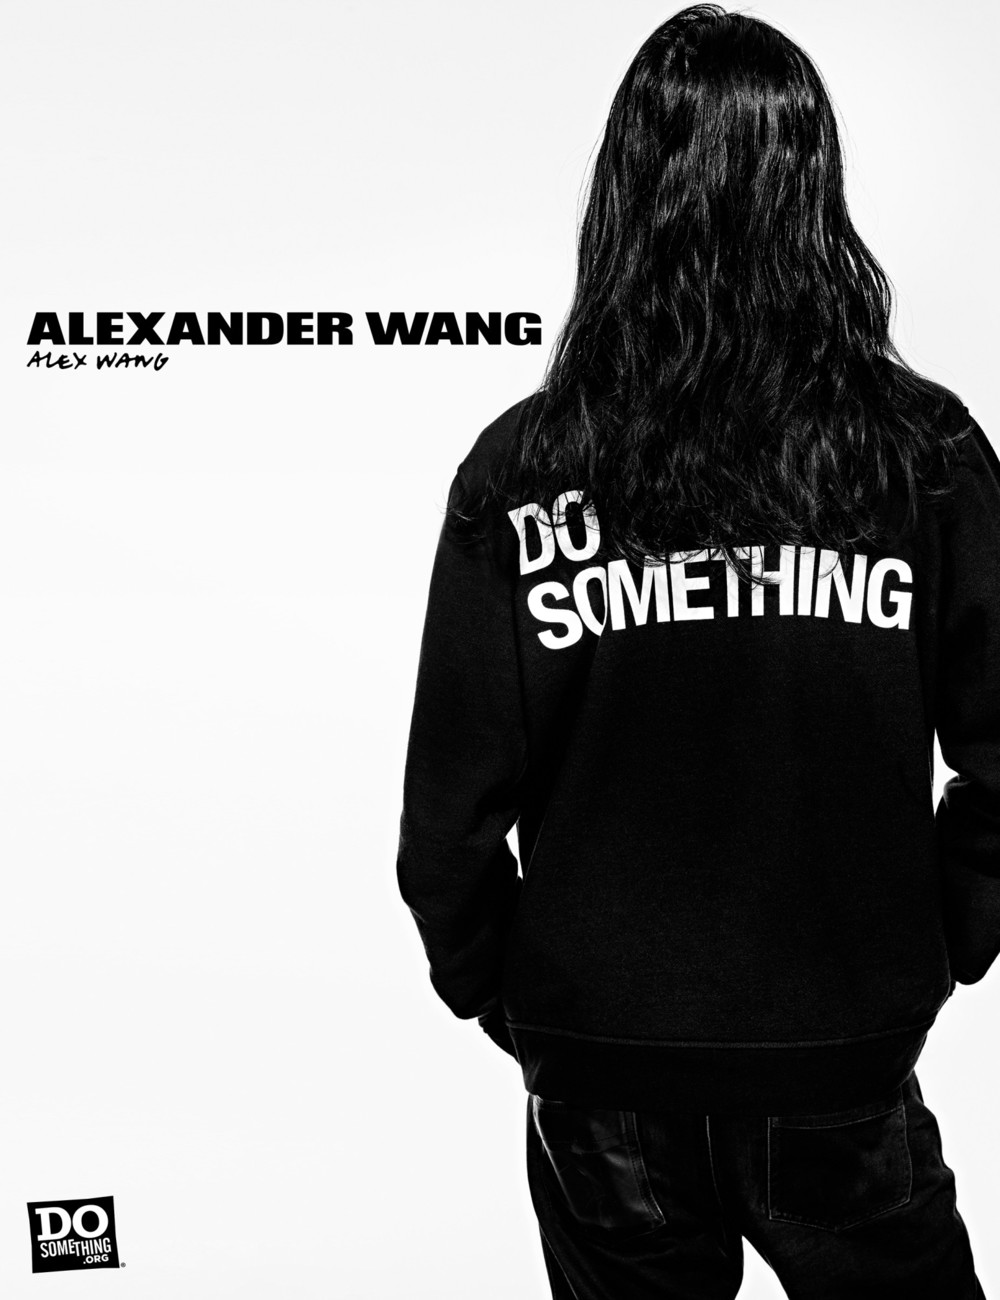 24-ALEX-WANG-AW-X-DO-SOMETHING-1542x2004.jpg